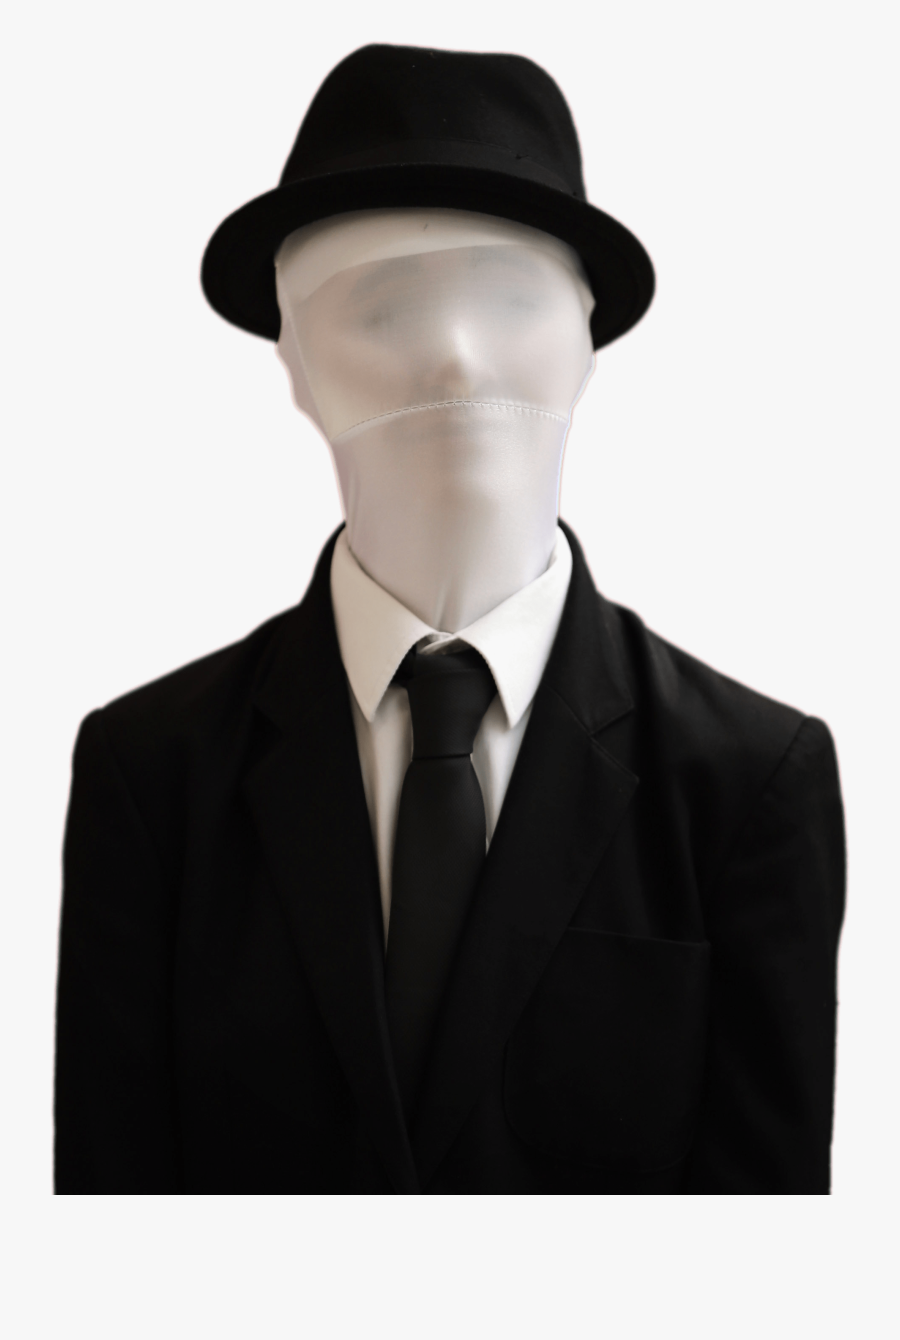 Comics And Fantasy - Slender Man With Hat, Transparent Clipart